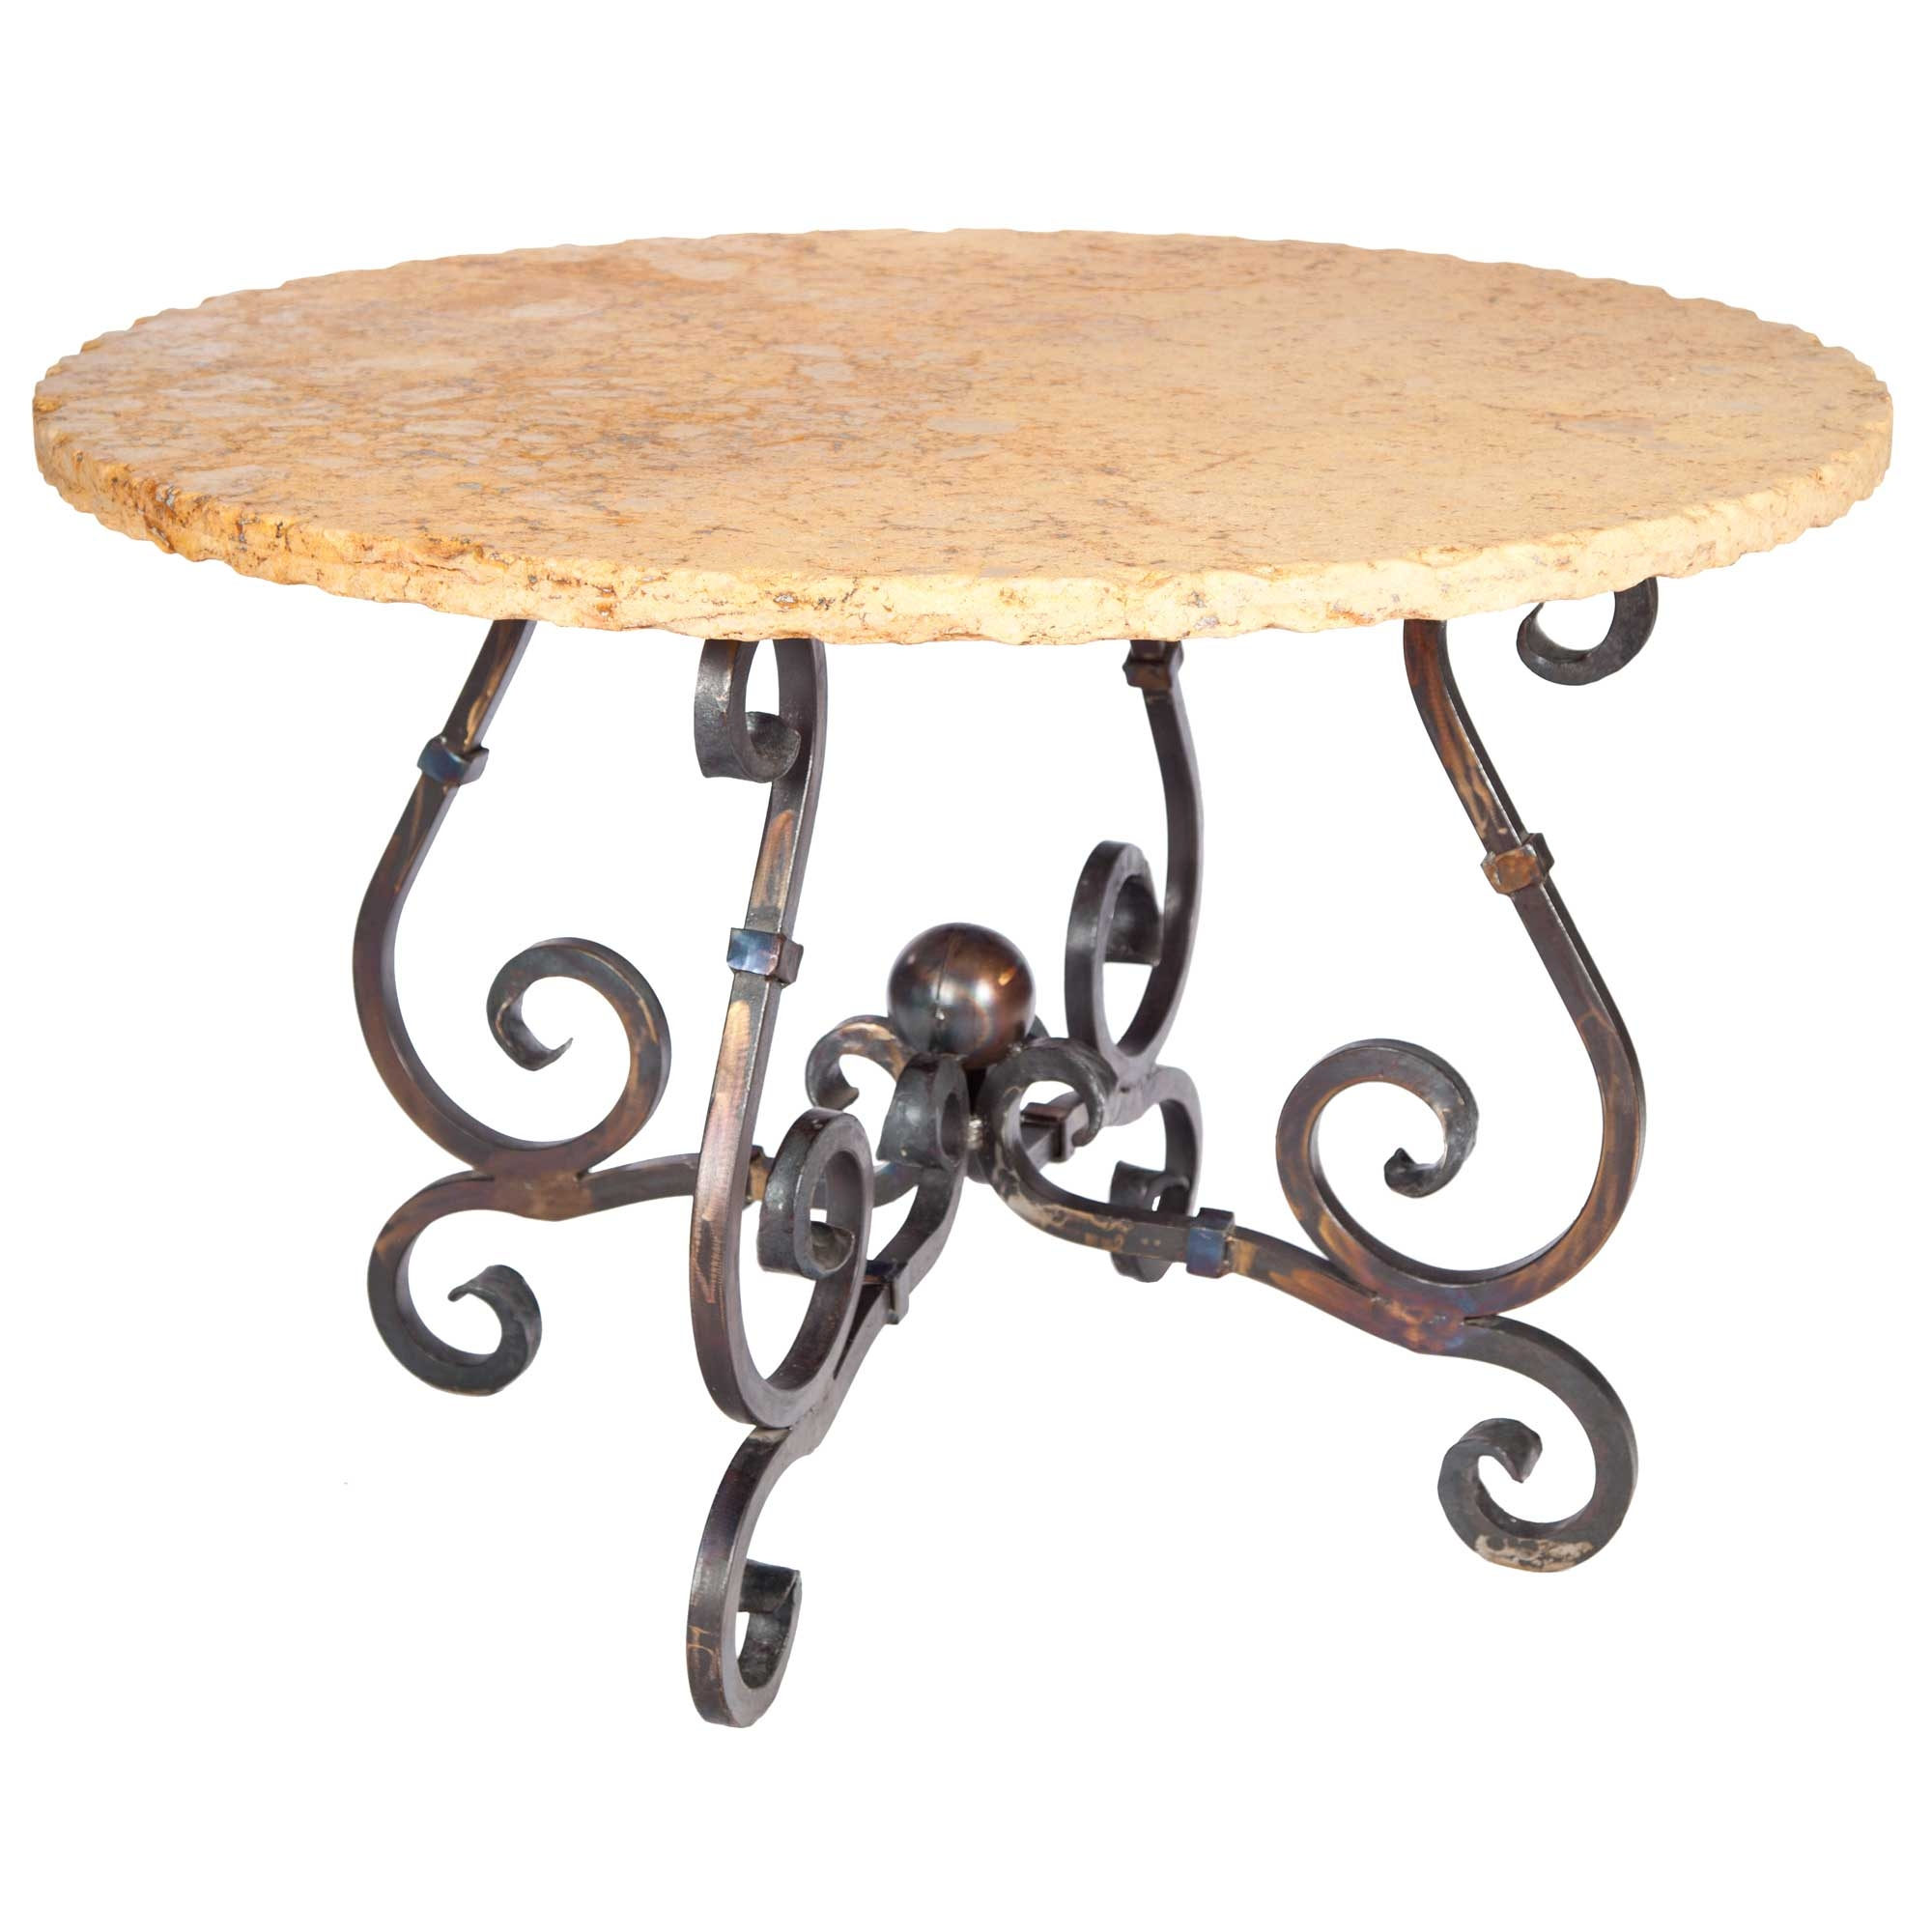 French Iron Dining Table with 48 in Round Marble Top